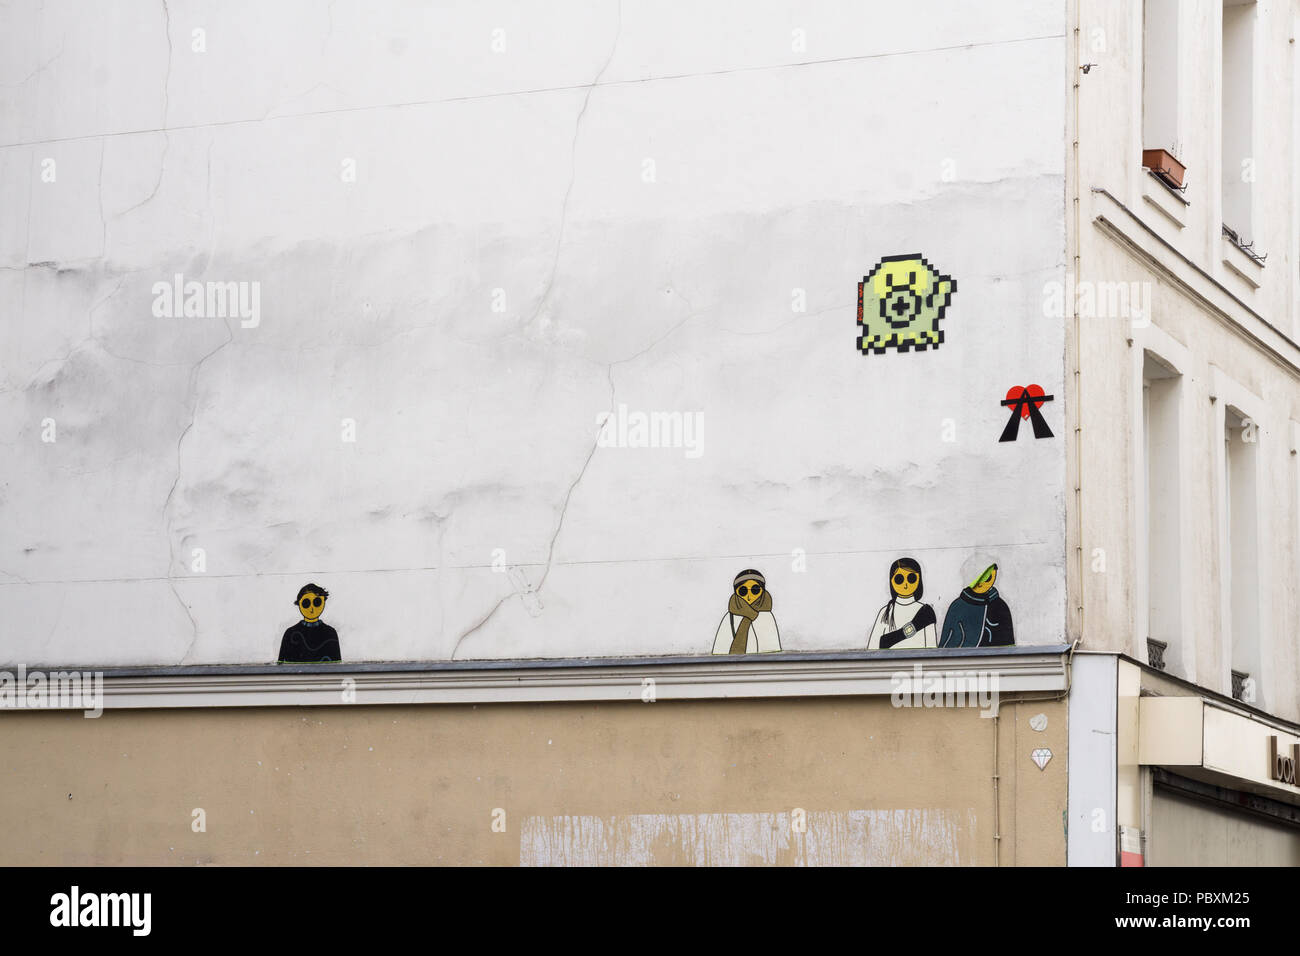 Small stencil graffiti on wall in Paris, France. - Stock Image